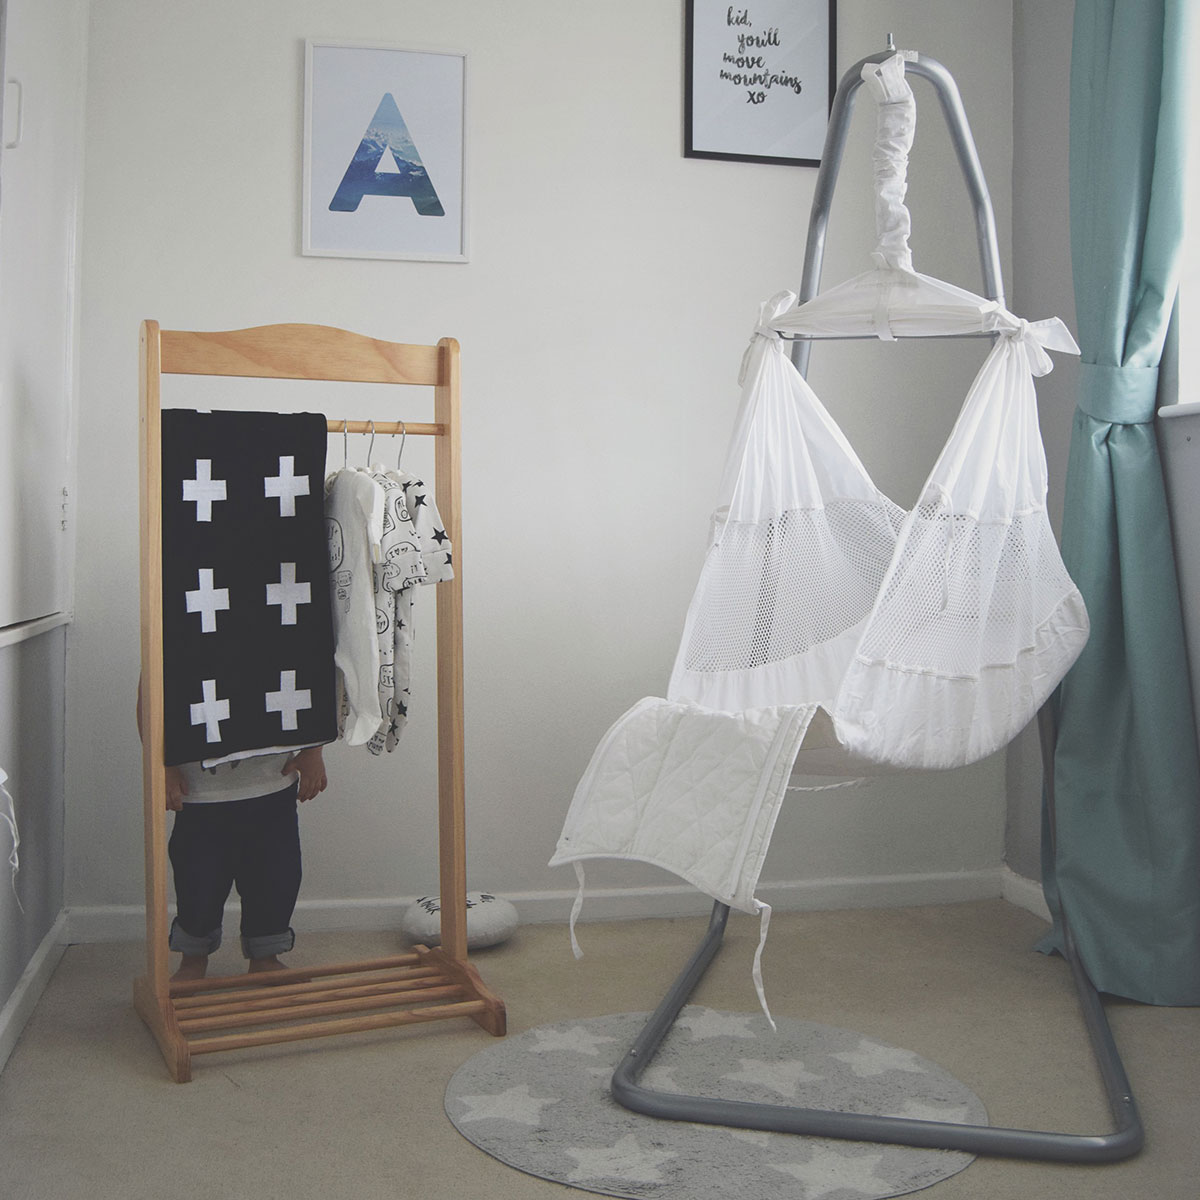 Our month in insta-snaps; June 2016 - White Poco Baby hammock in monochrome nursery for newborn baby with big brother and Next onesies